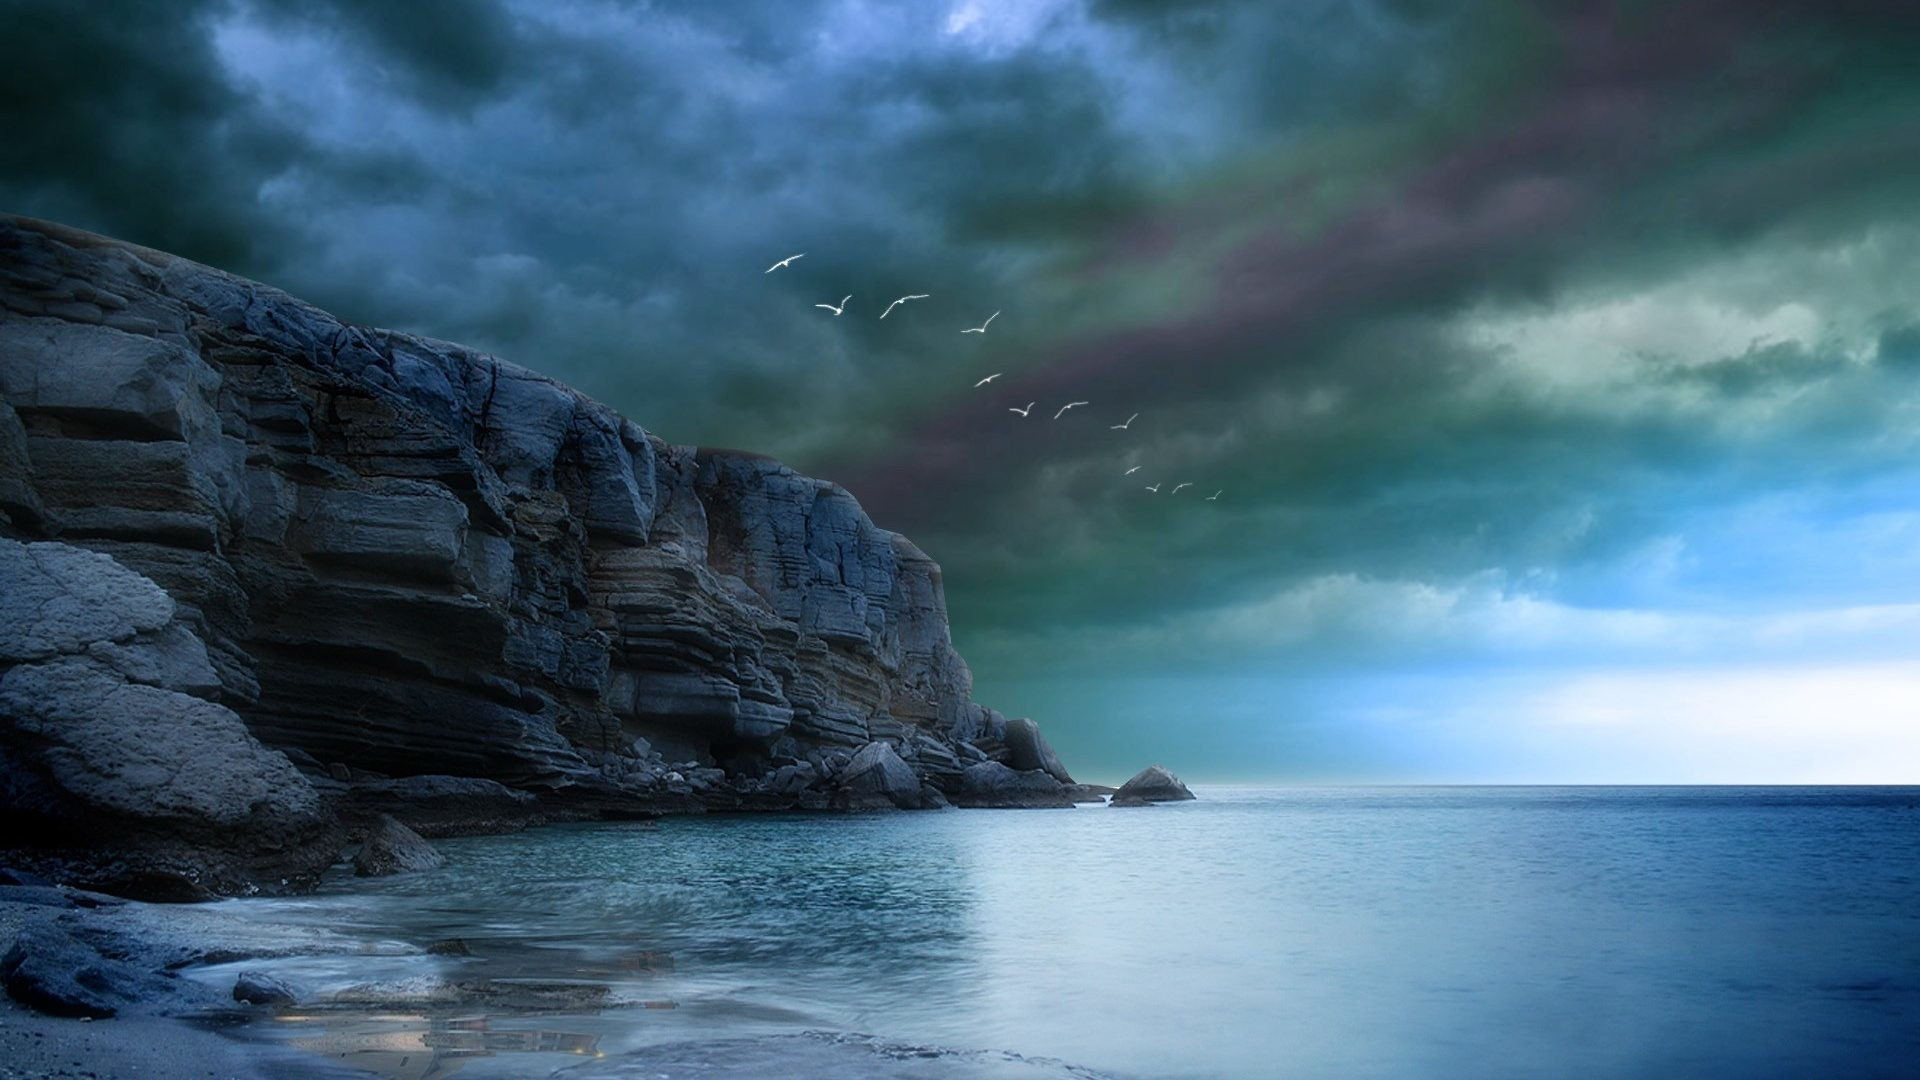 1920x1080 Oceans - Rocky Amazing Rock Blue Birds Sky Sea Clouds Dark Ocean Storm  Storms Cliff Beautiful